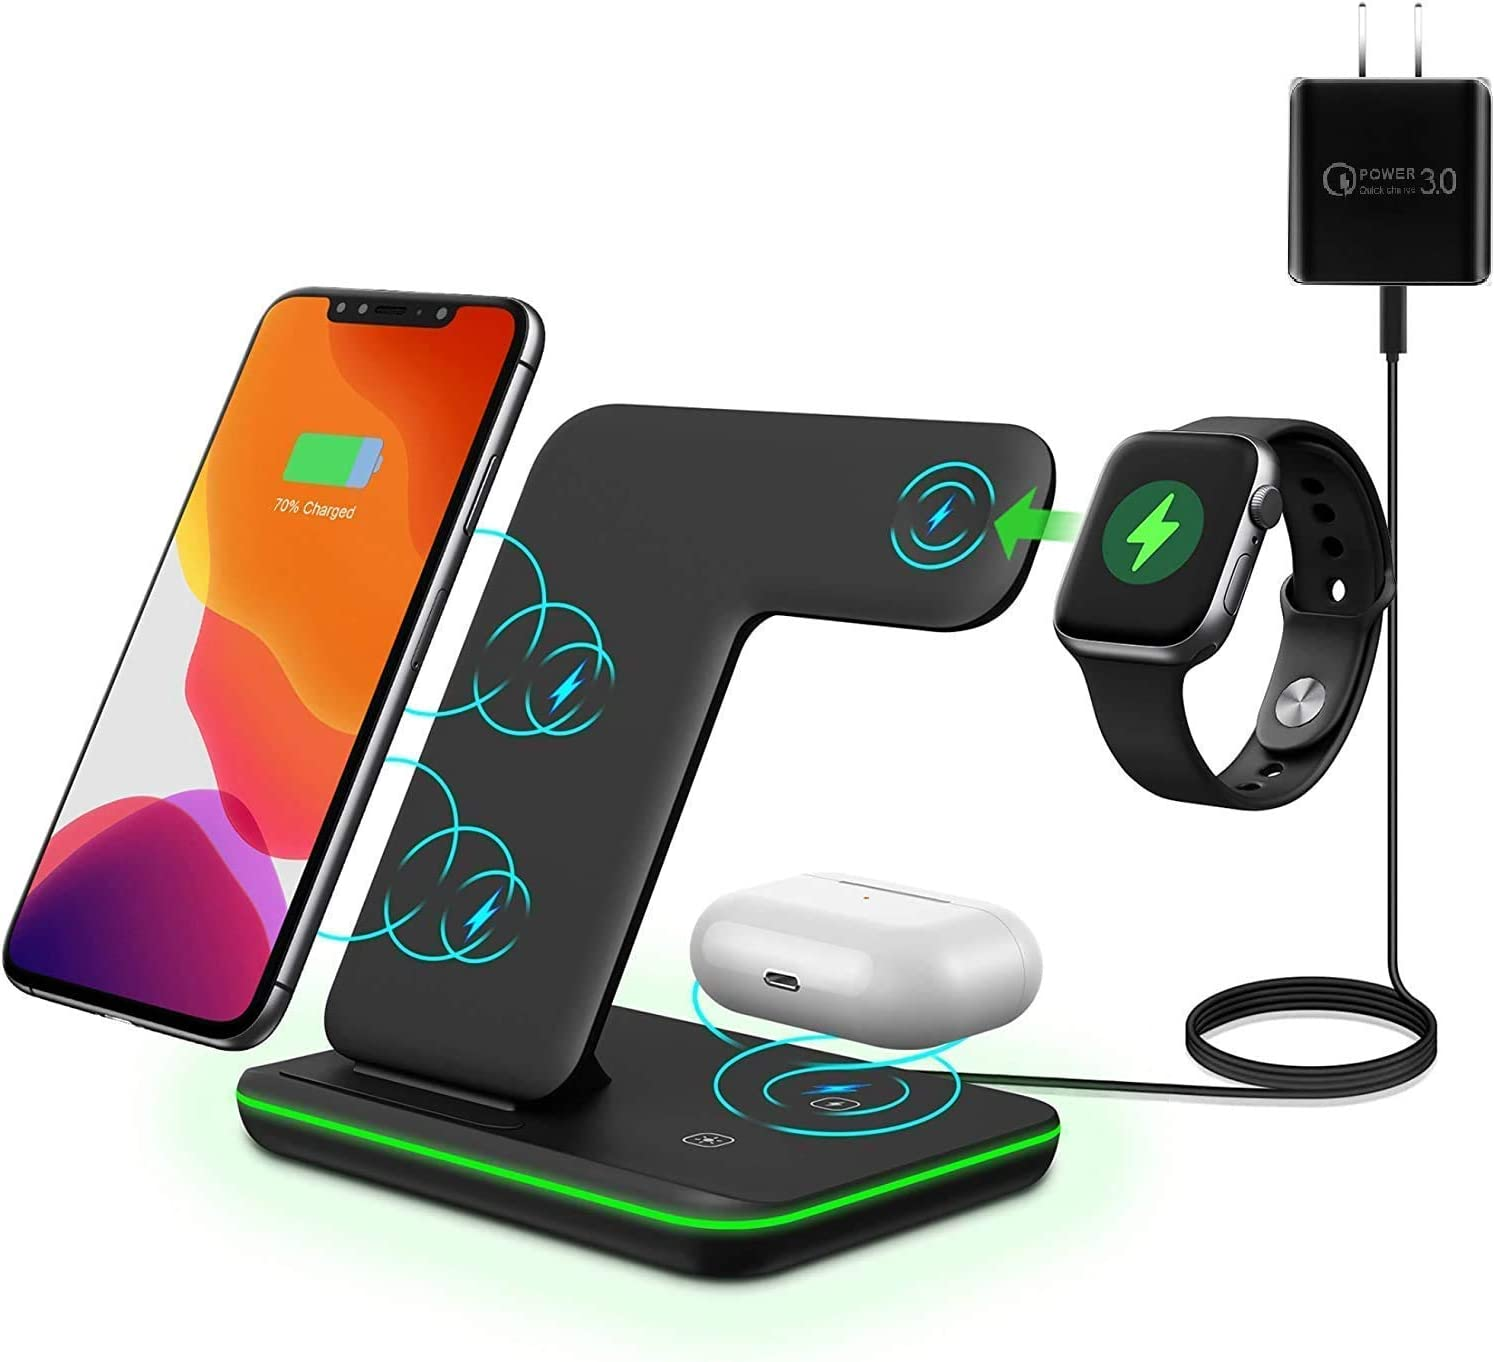 3 in 1 All Wireless 15w Fast Charging Station for Apple iPhones + Watch (S1 - S5: Built-in Watch Charging pad) + AirPods (2 & Pro) - Fast QC3.0 Adapter Included (Black)